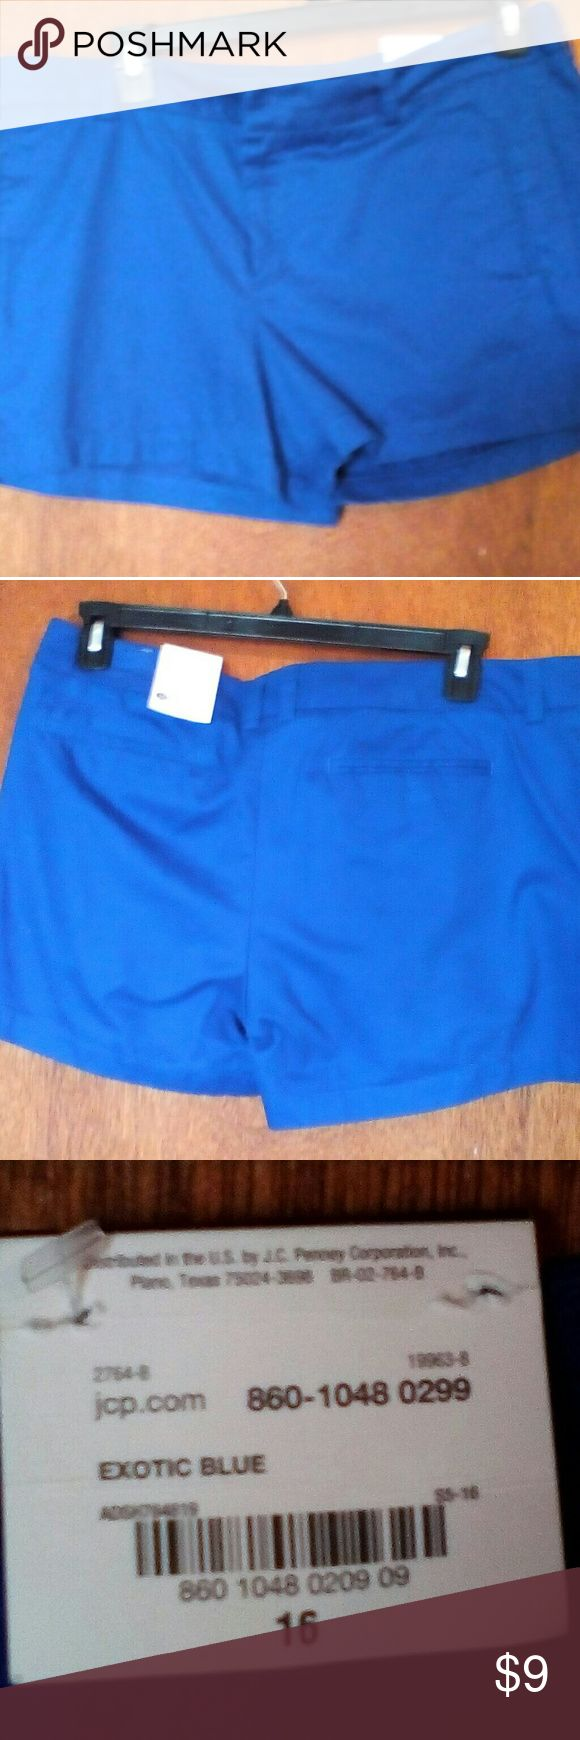 Royal blue shorts, women's size 16, new with tags. New royal blue shorts by Style, size 16, with tags. 20% off bundles!! Style & Co Shorts